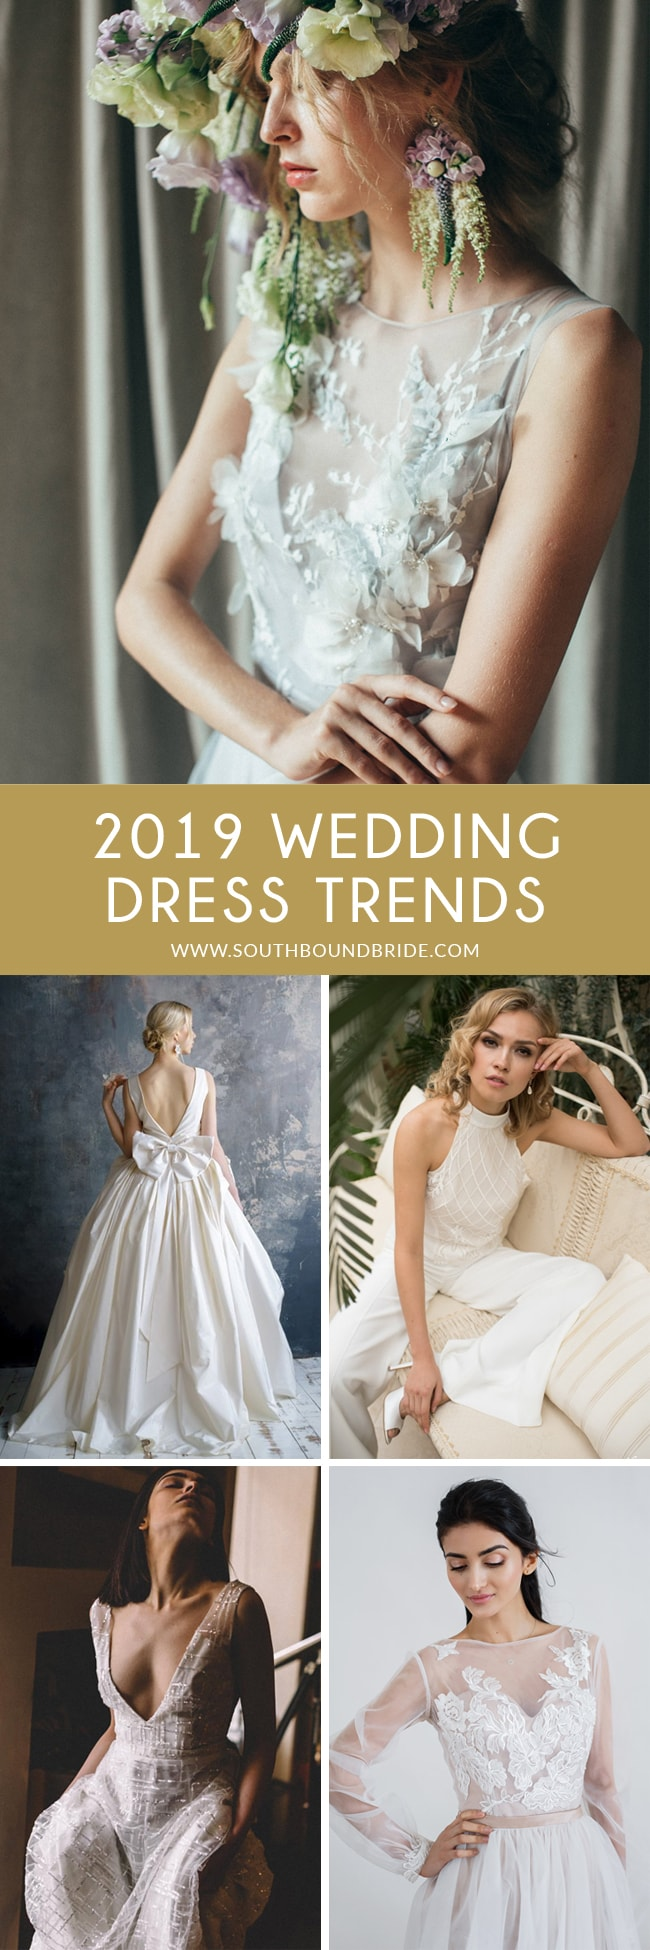 f87268405398 The 2019 Wedding Dress Trends Brides Need to Know